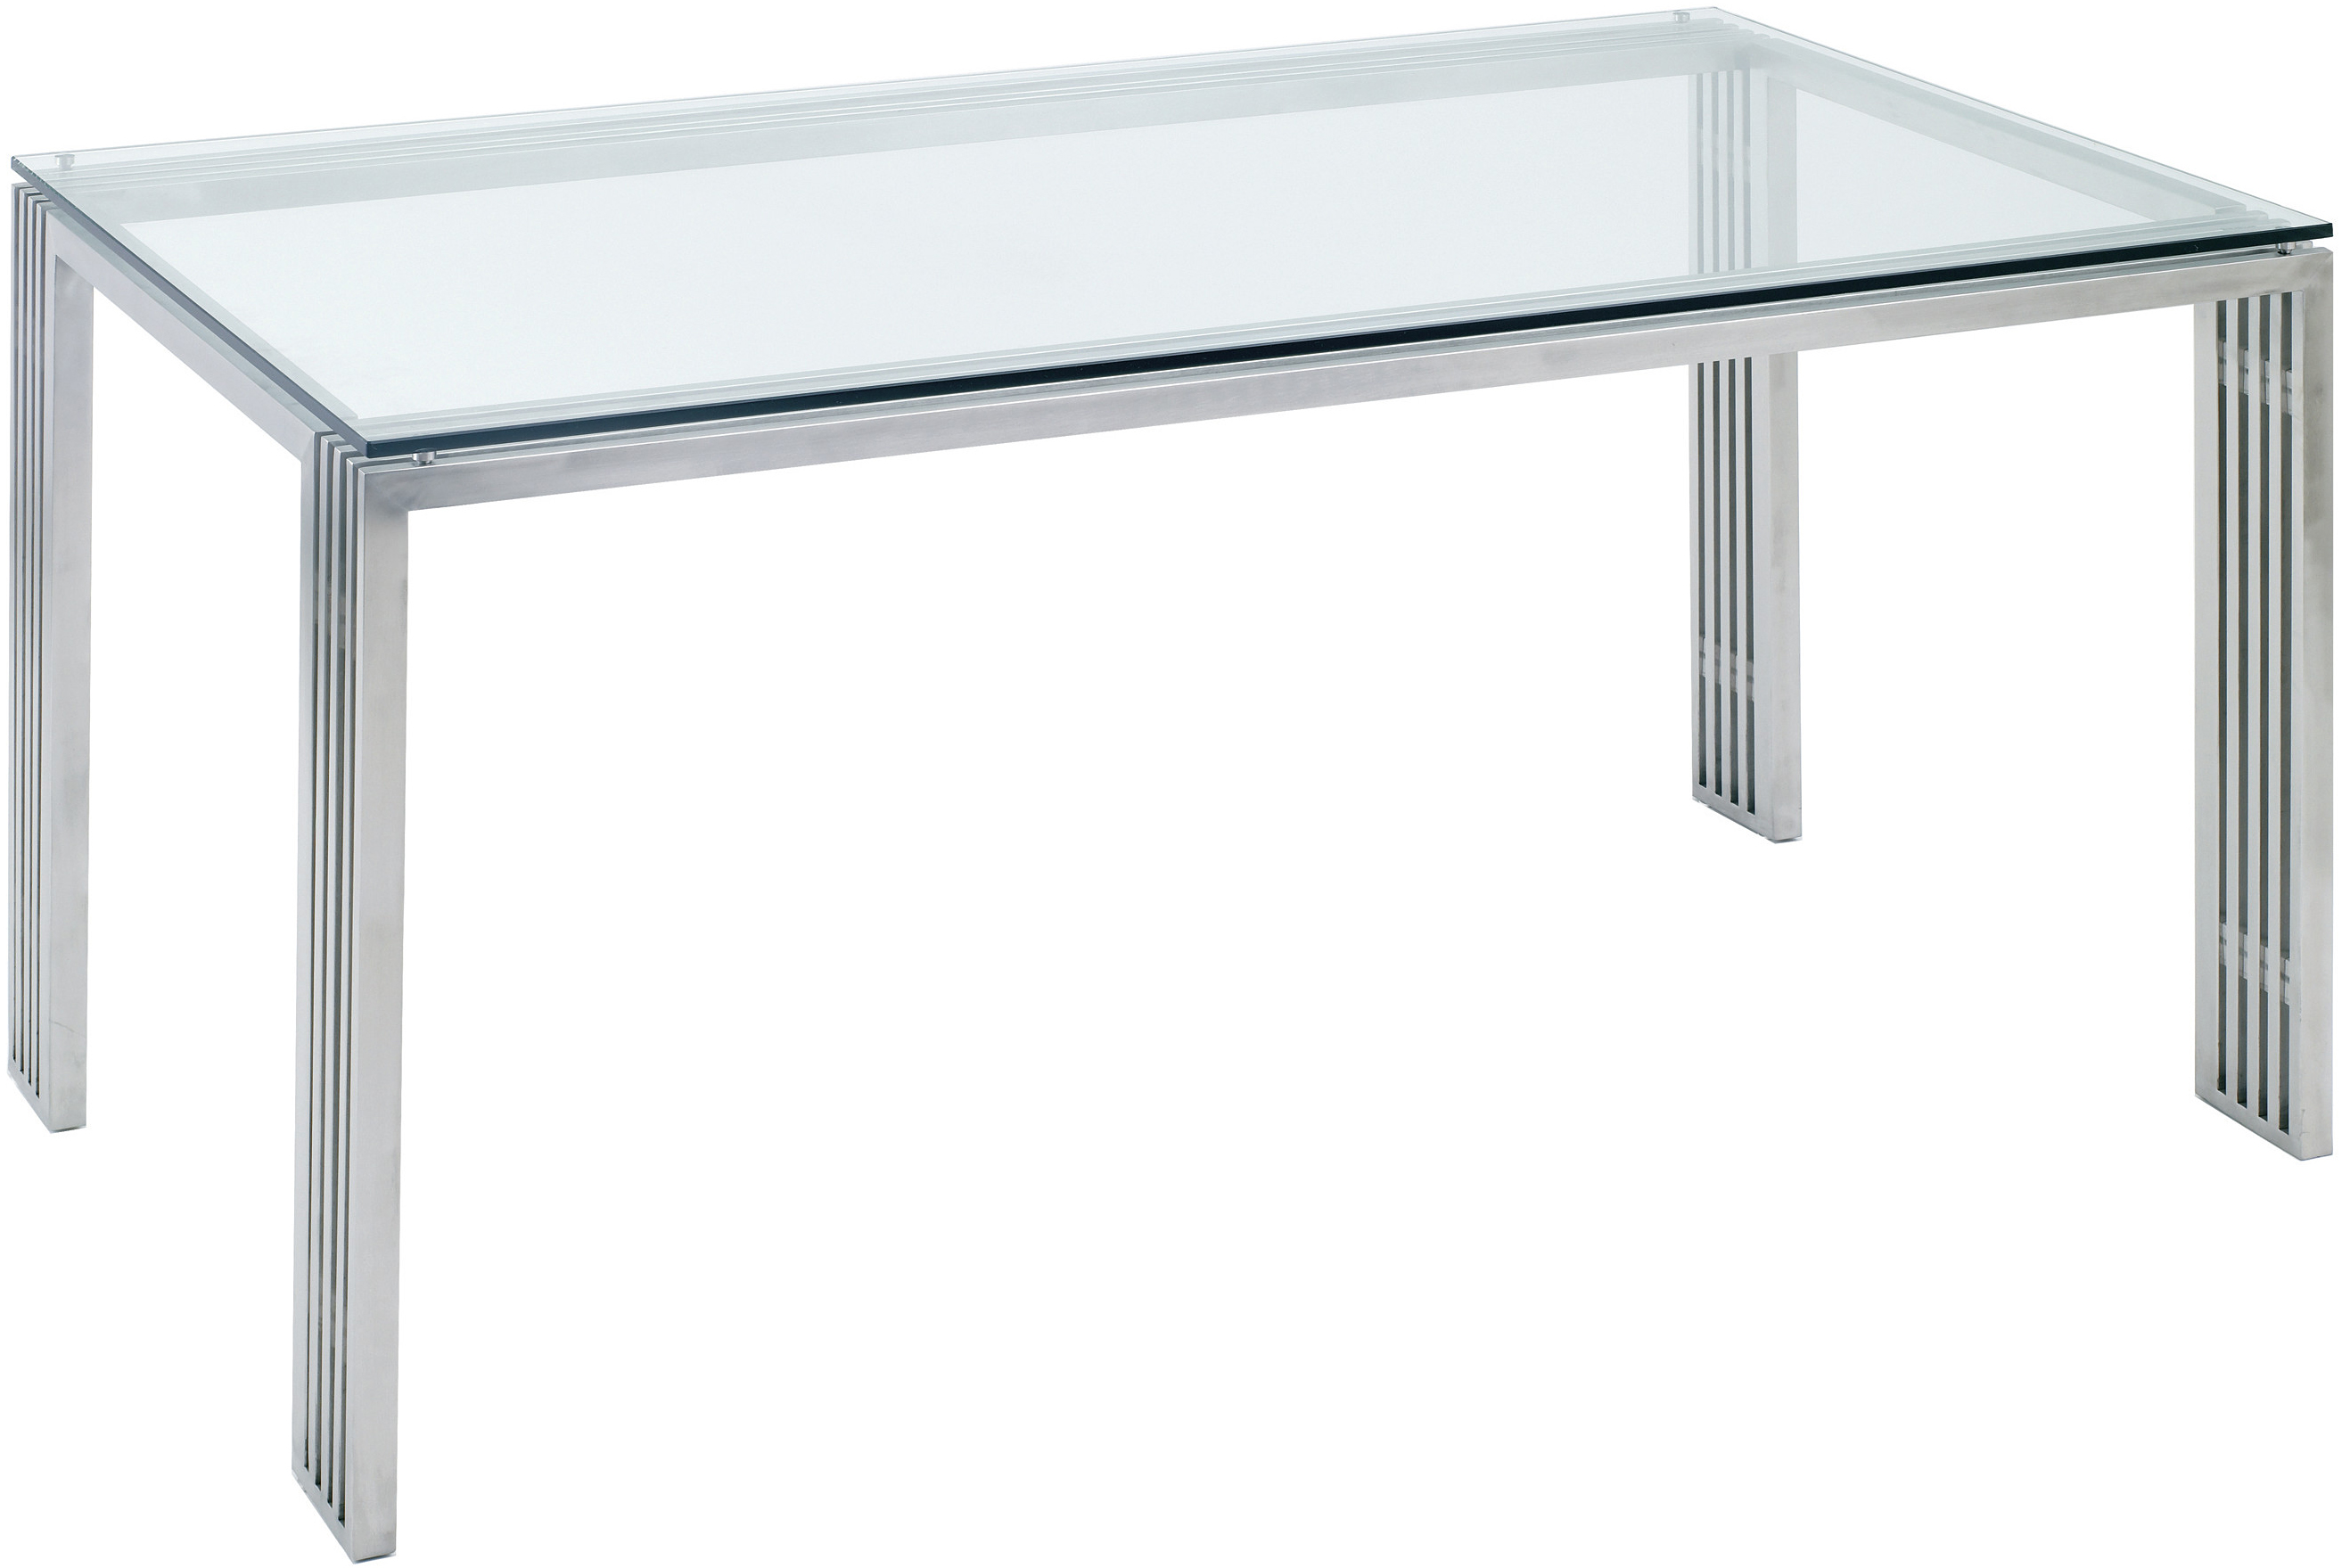 Quasi dining table brushed stainless steel dining table for Stainless steel dining table